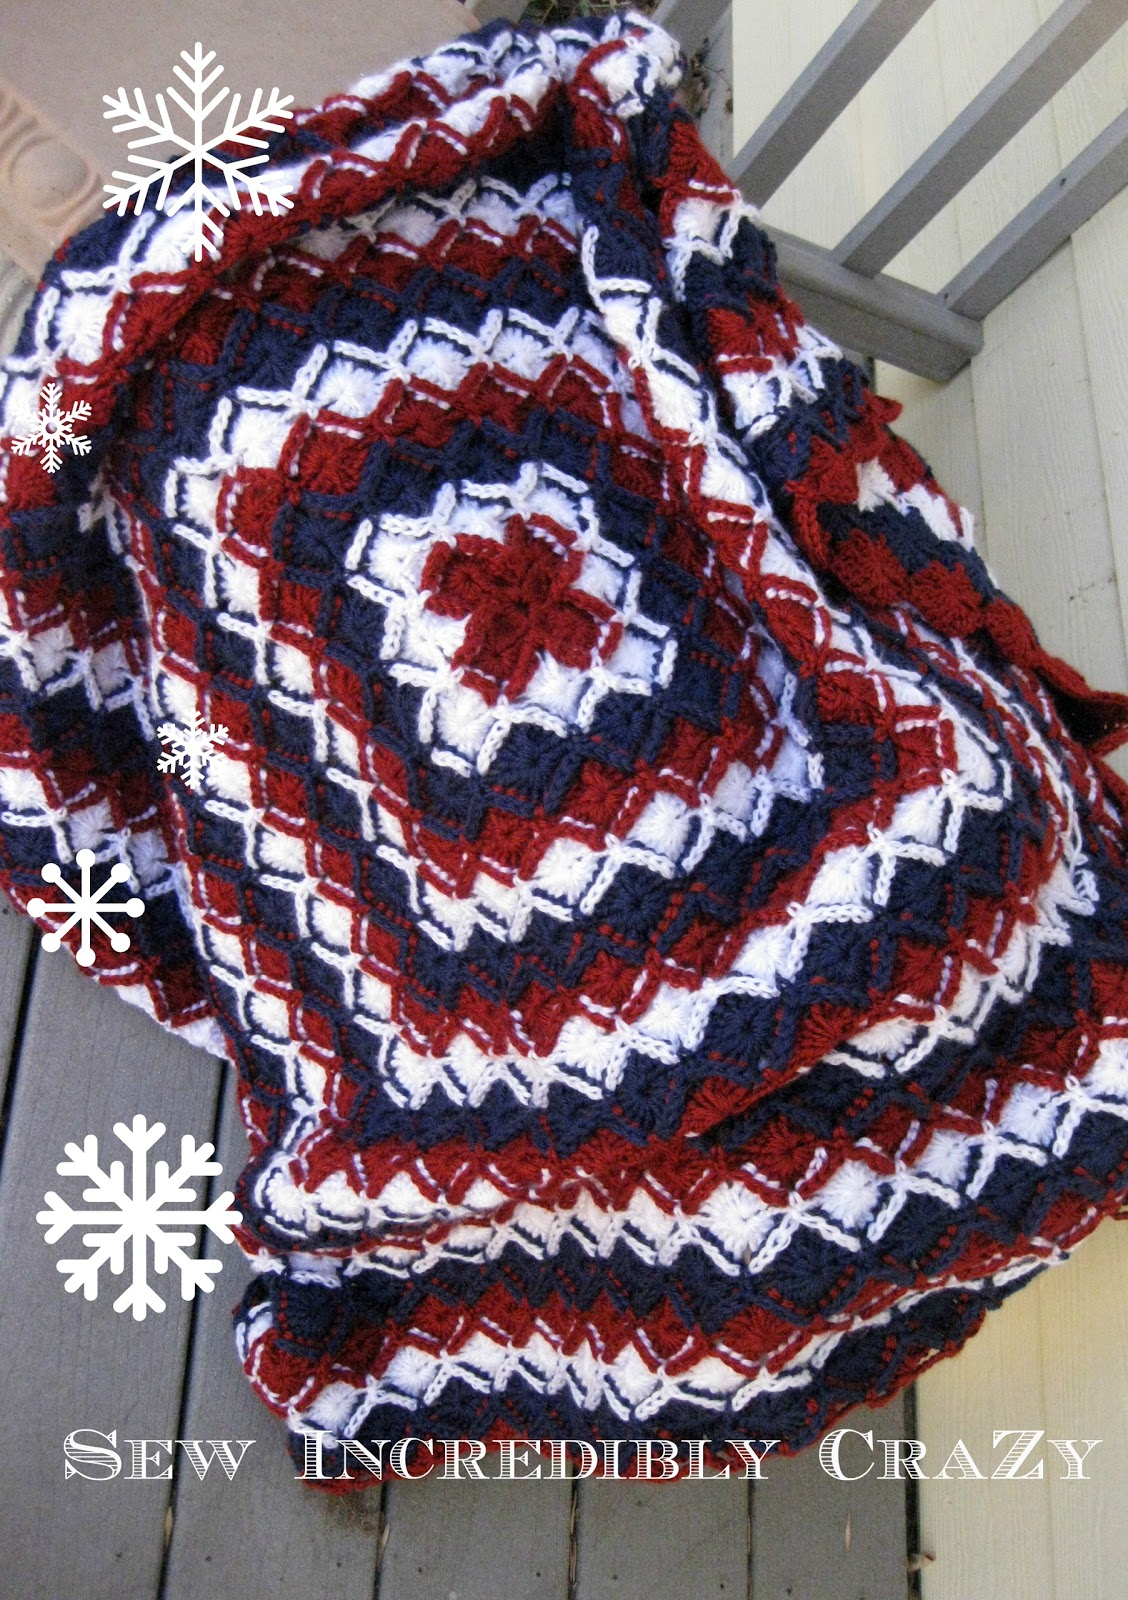 Sew Incredibly Crazy: A distraction........Bavarian Crochet